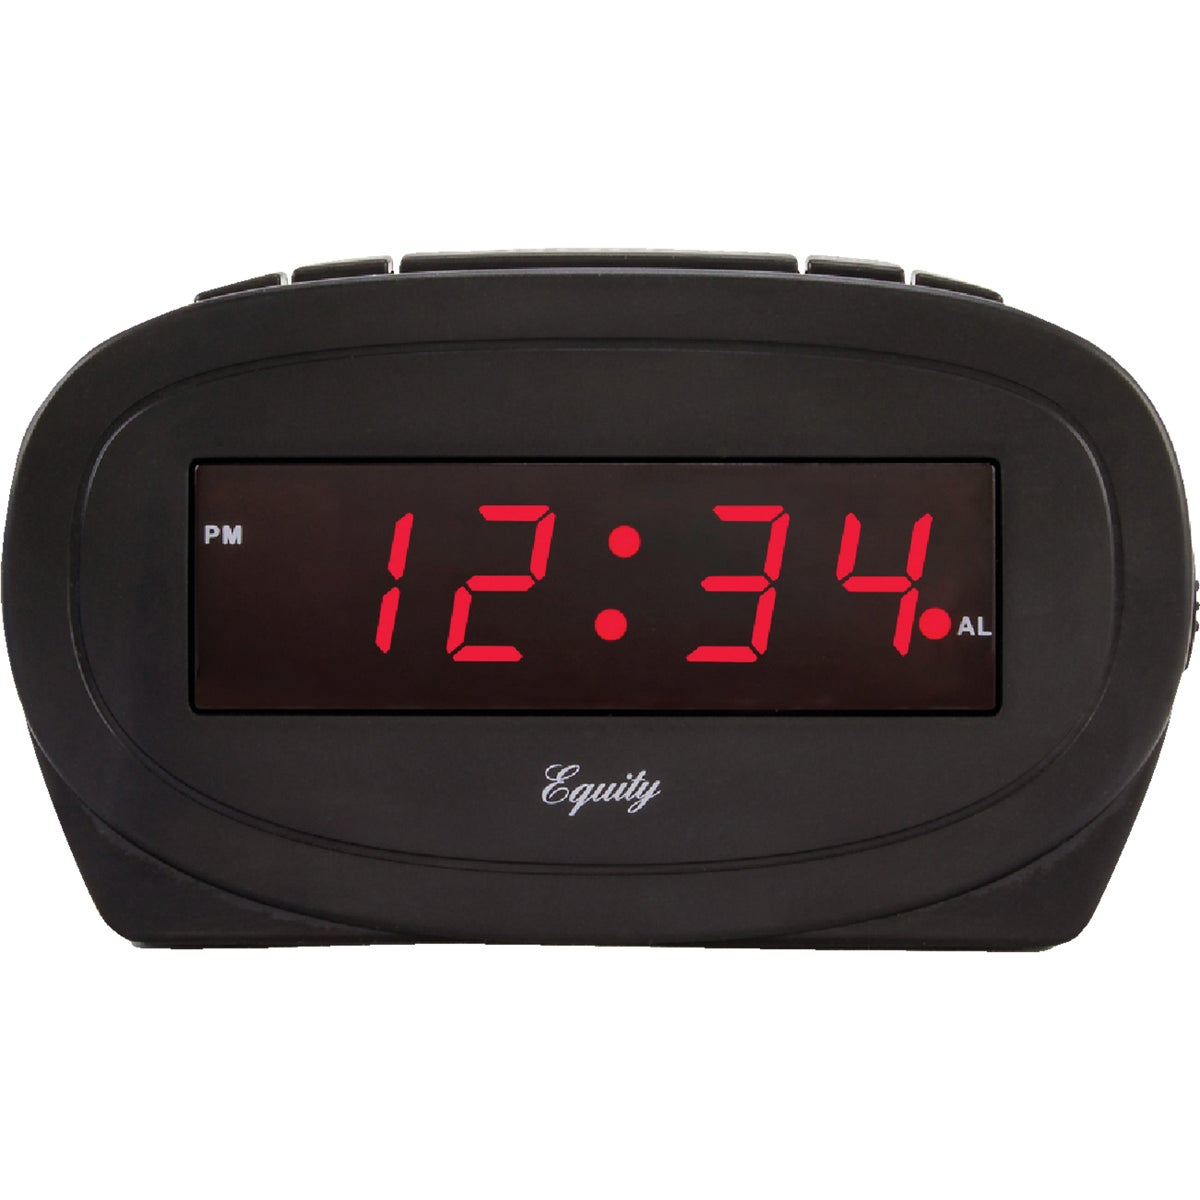 LED ALARM CLOCK - 3138AT by Geneva Clock Company